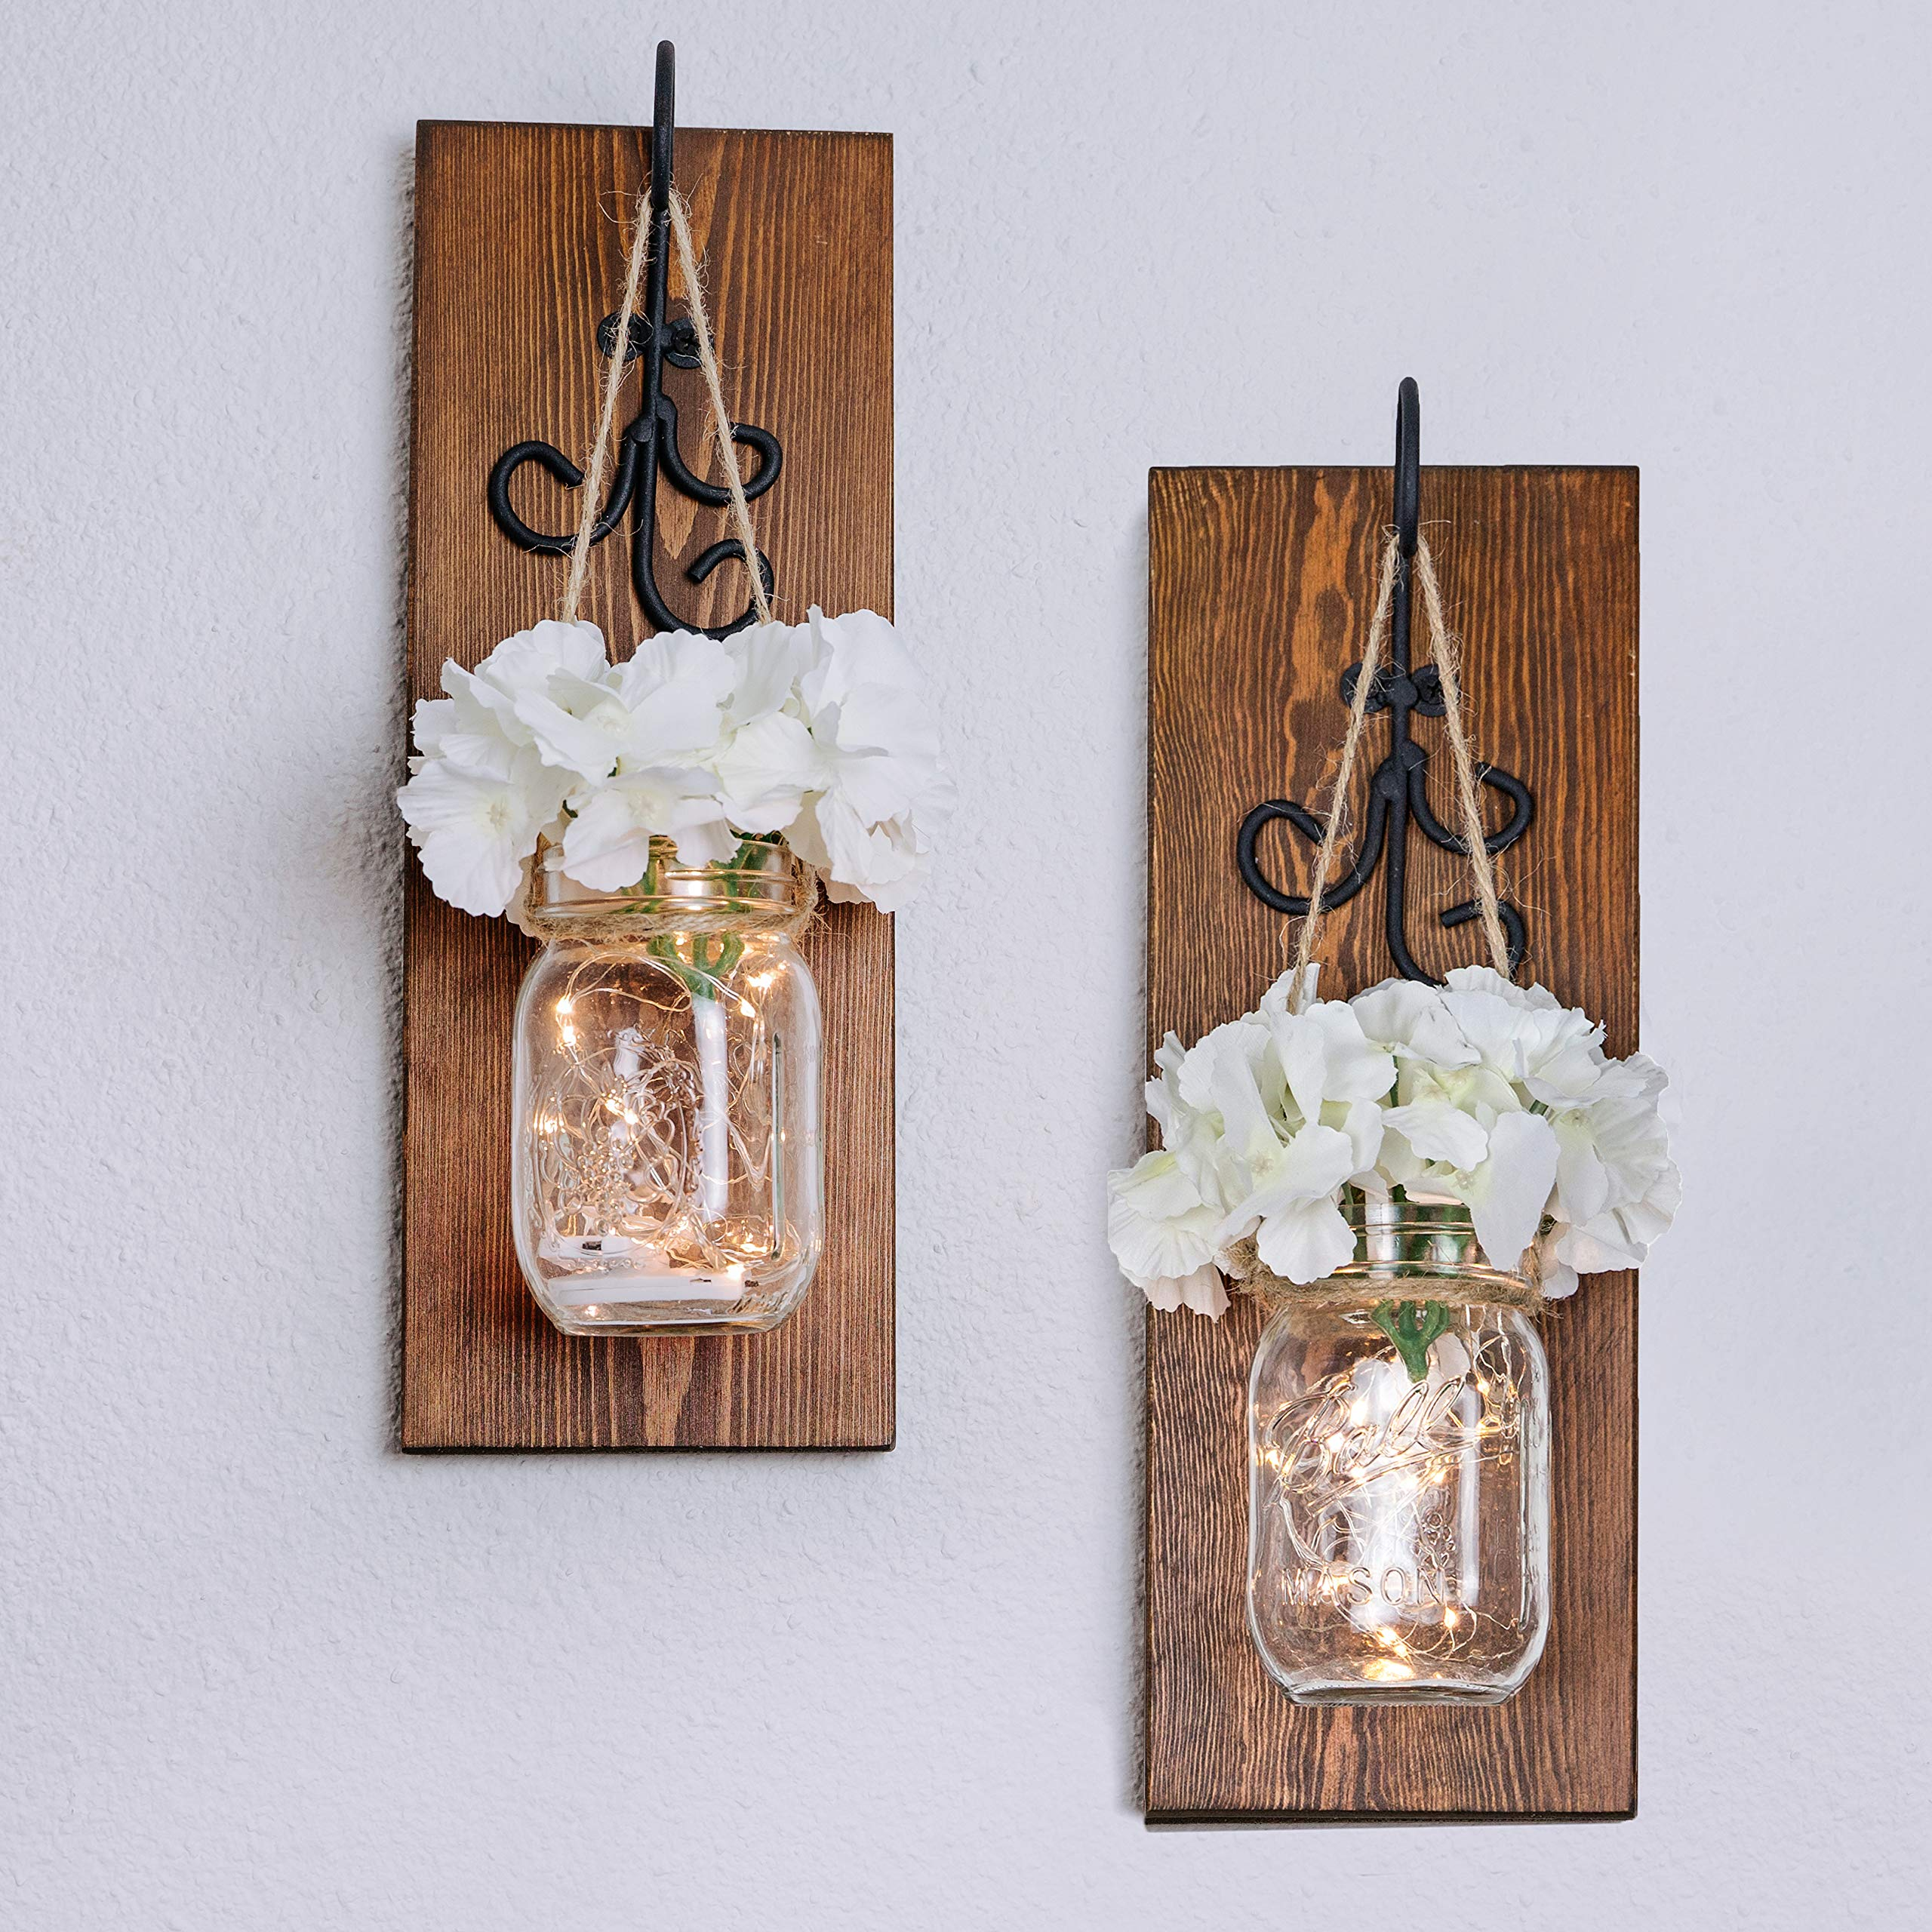 Bleecker Station Rustic Mason Jar Sconces with LED Fairy Lights, Silk Hydrangea Flowers and Decorative Hooks, Batteries Included, Mason Jar Lights, Rustic Home Decor (Set of 2) (Walnut Brown) by Bleecker Station